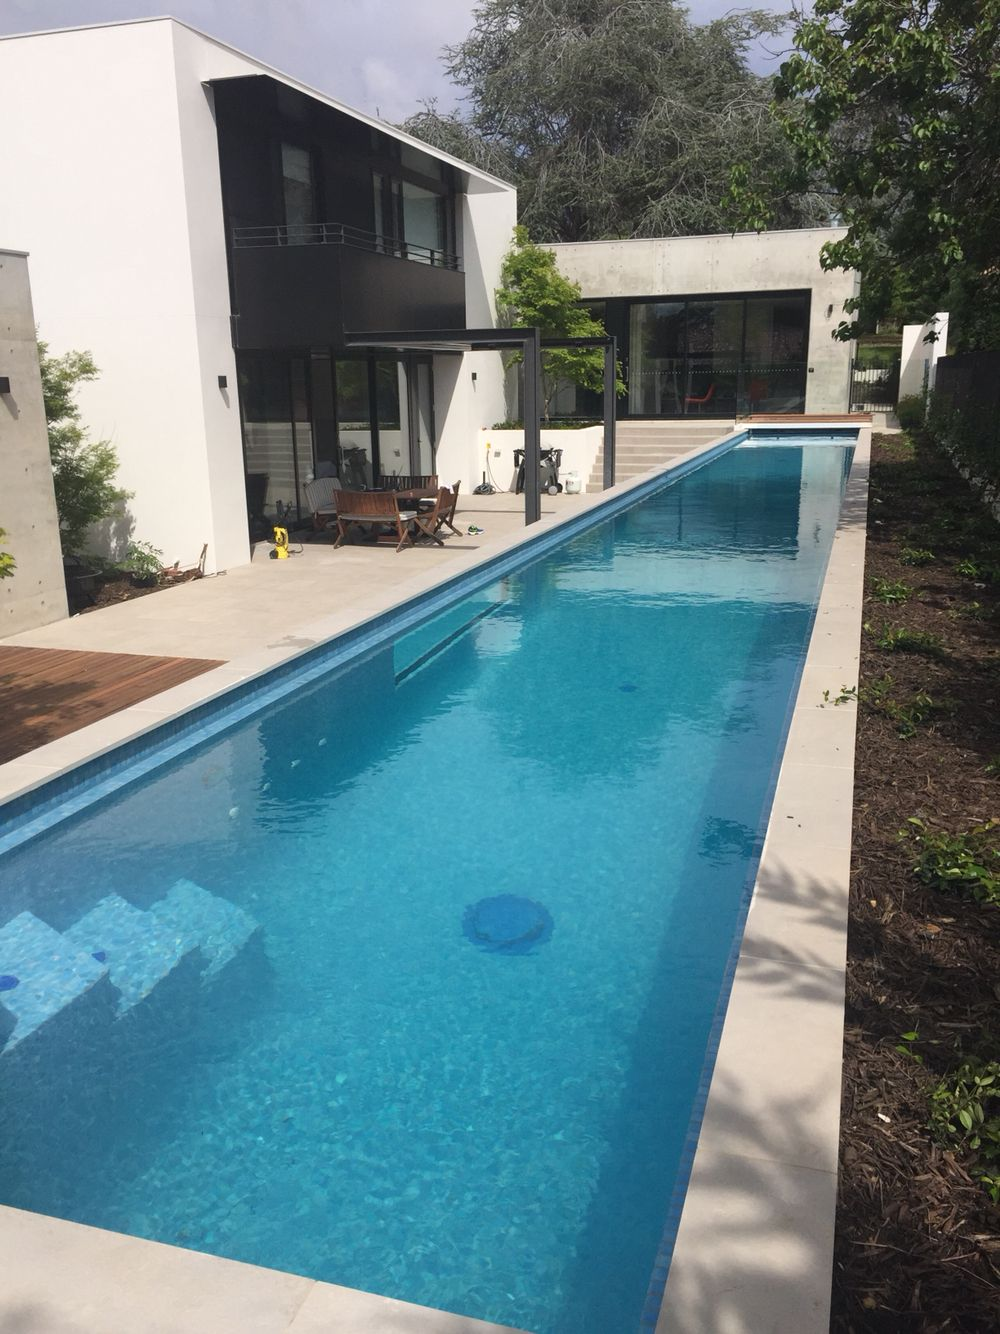 25m Above Ground Residential Lap Pool With 2 Side Windows Lap Pools Backyard Luxury Swimming Pools Swimming Pool Designs